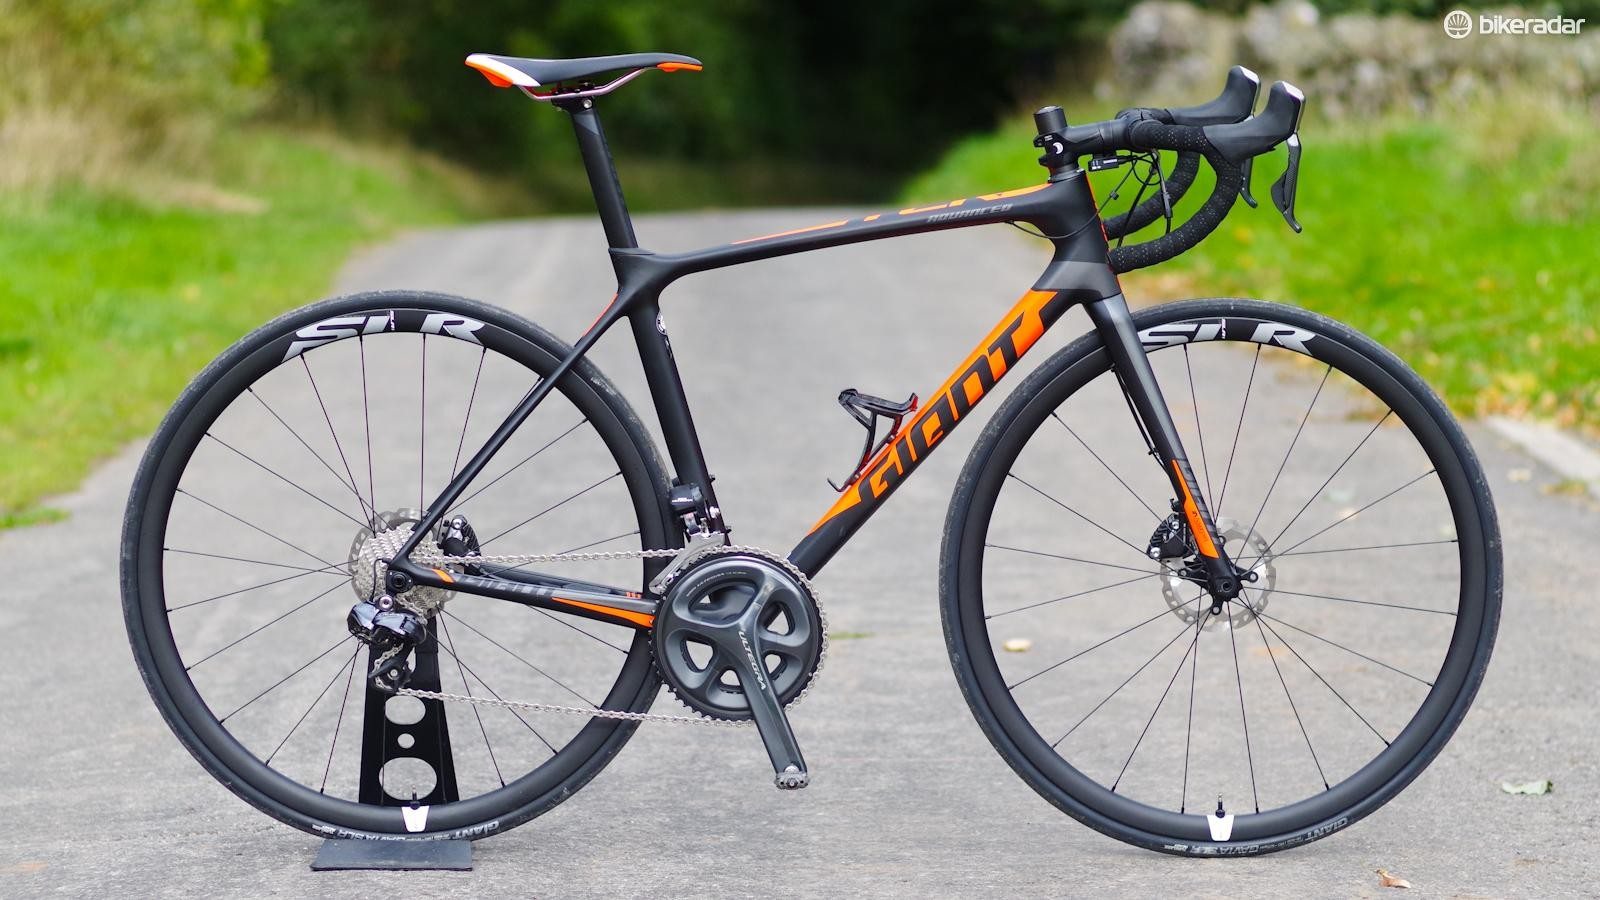 The Giant TCR Advanced Pro Disc is a proper racer with rotors